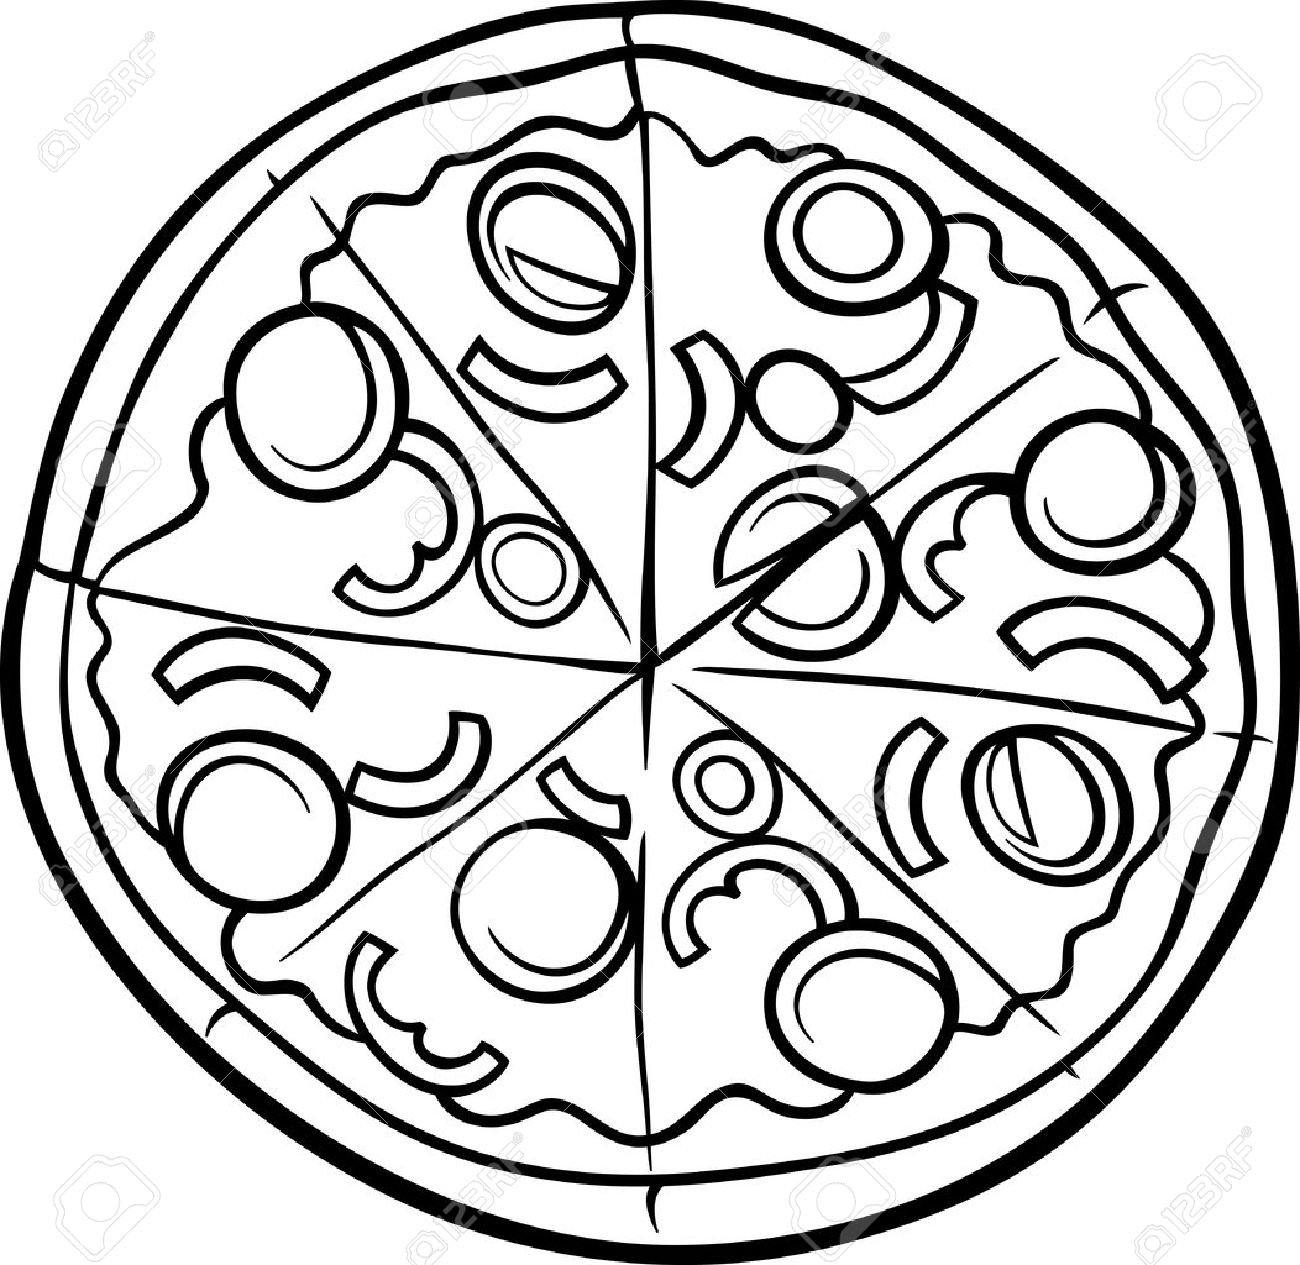 pizza drawing black and white at getdrawings com free for personal rh getdrawings com pepperoni pizza black and white clipart pepperoni pizza black and white clipart